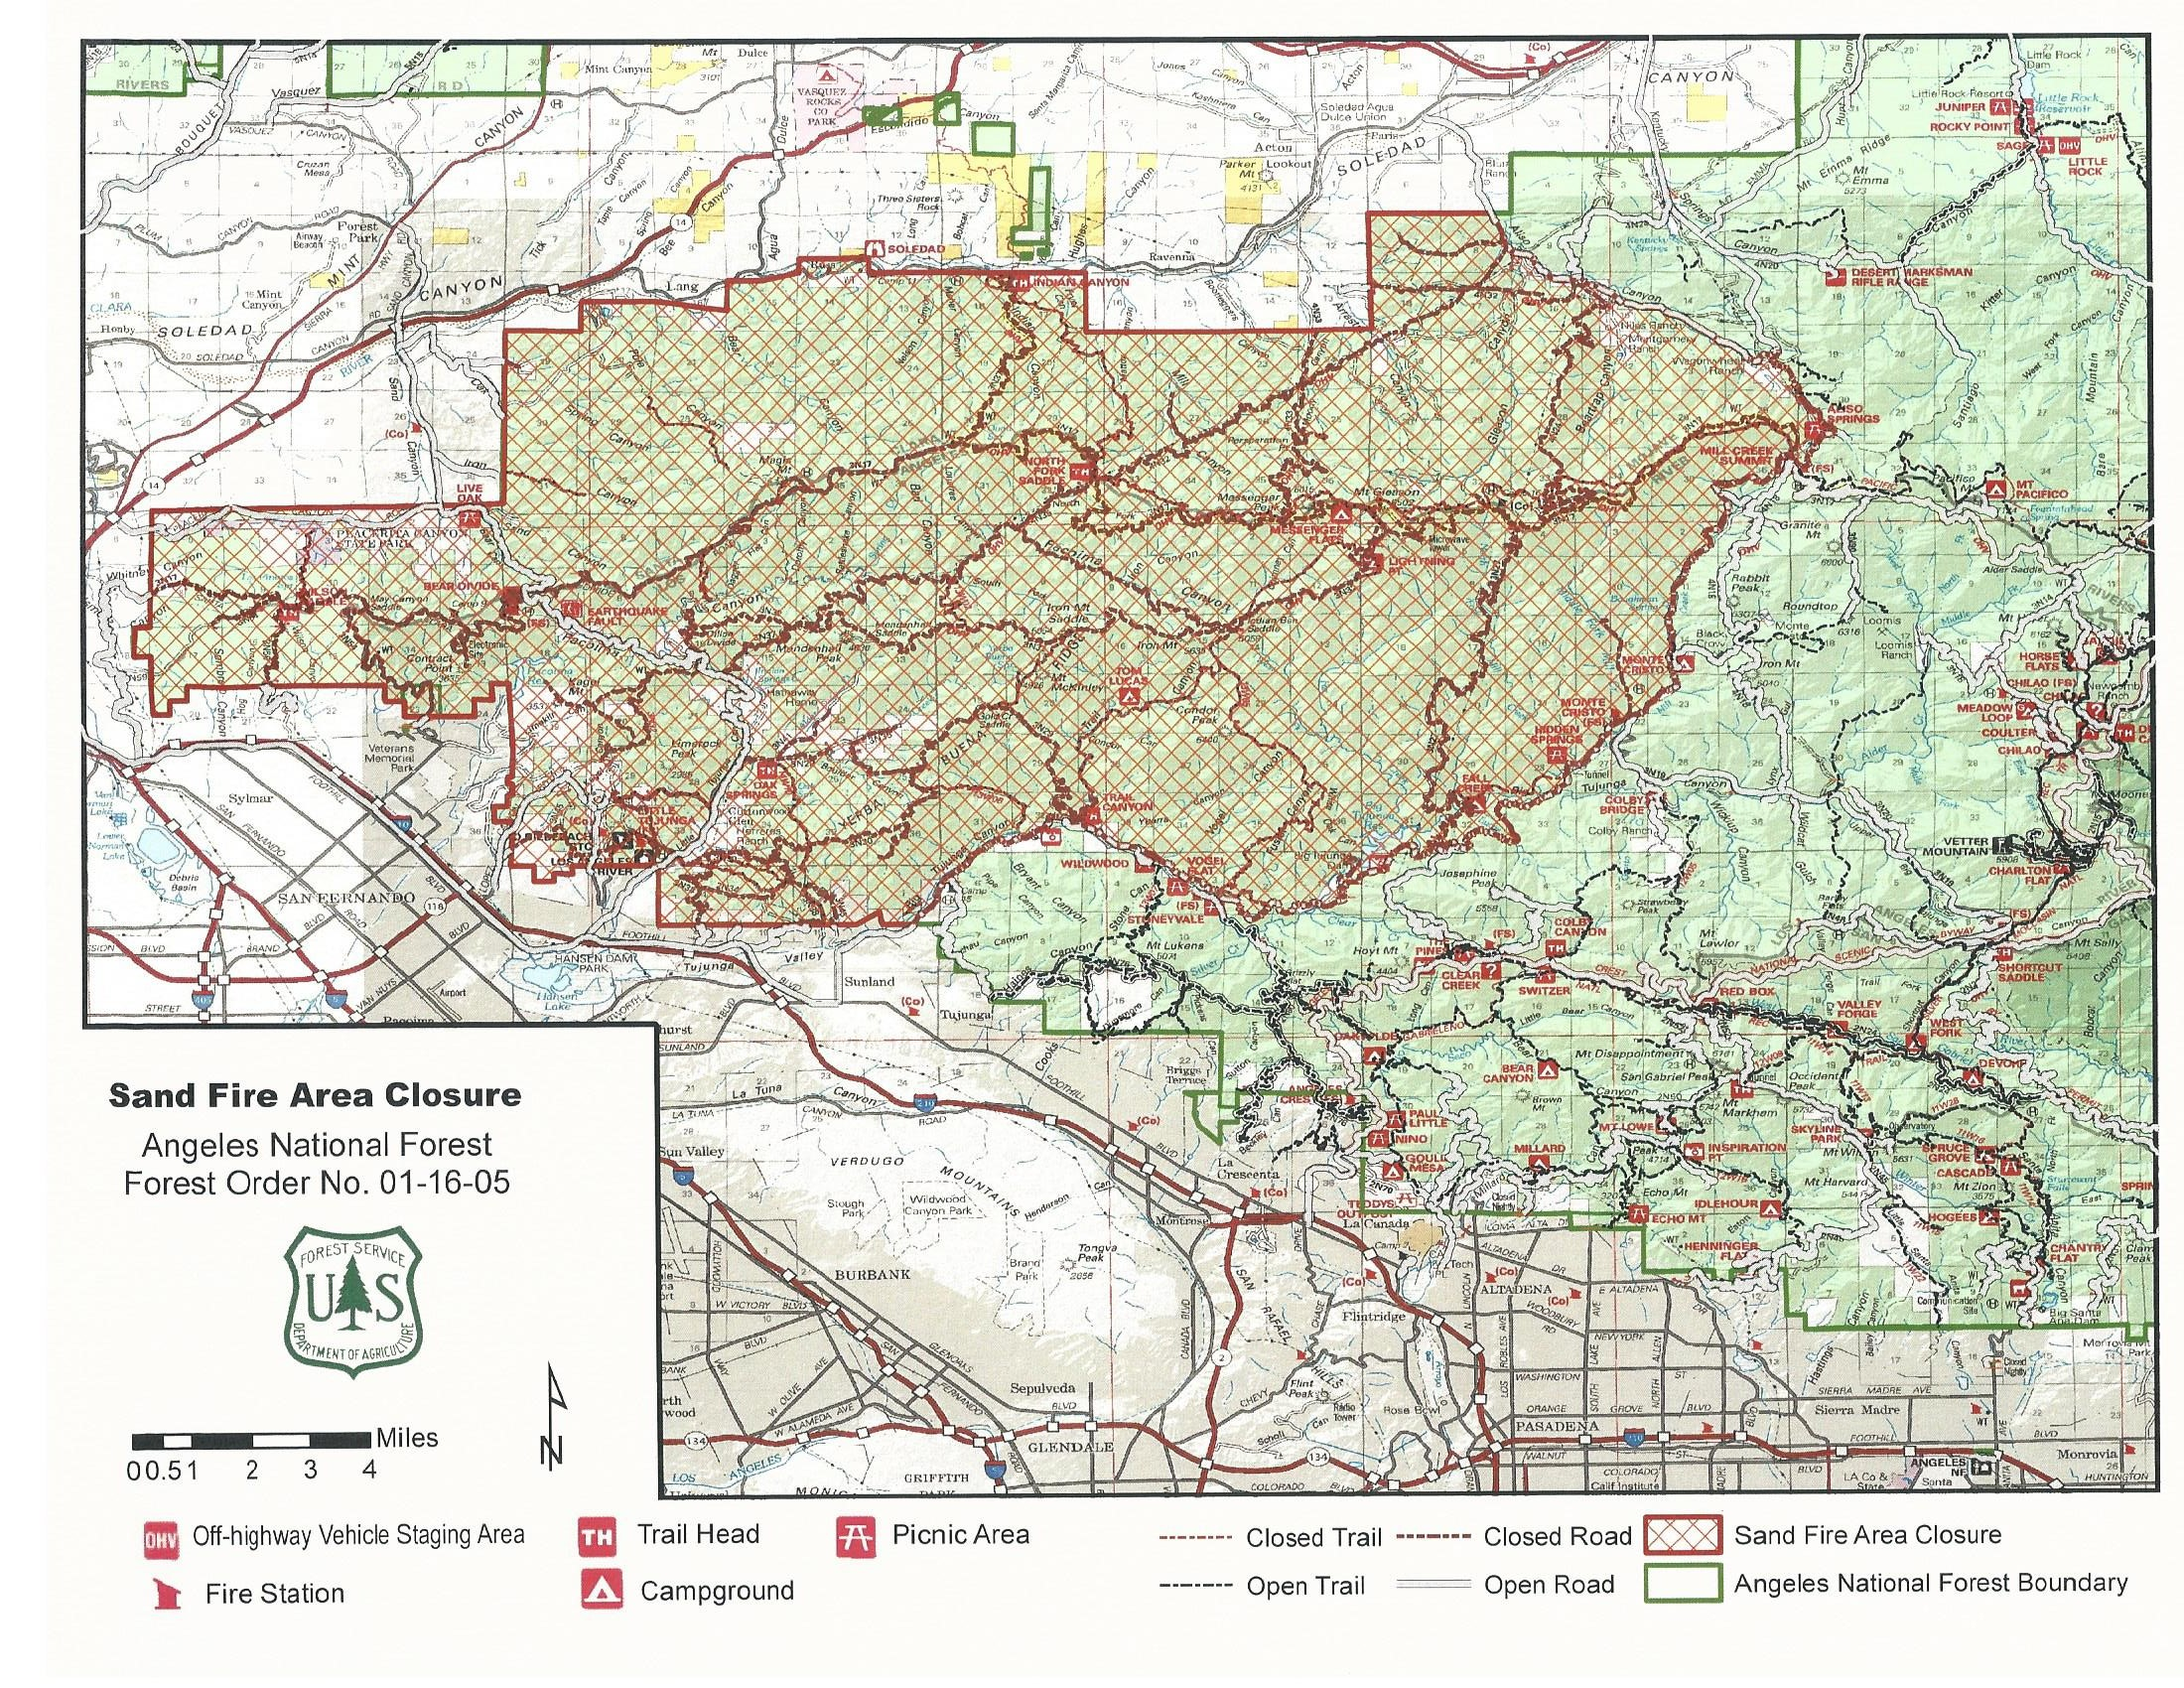 The Angeles National Forest Sand Fire closure area.